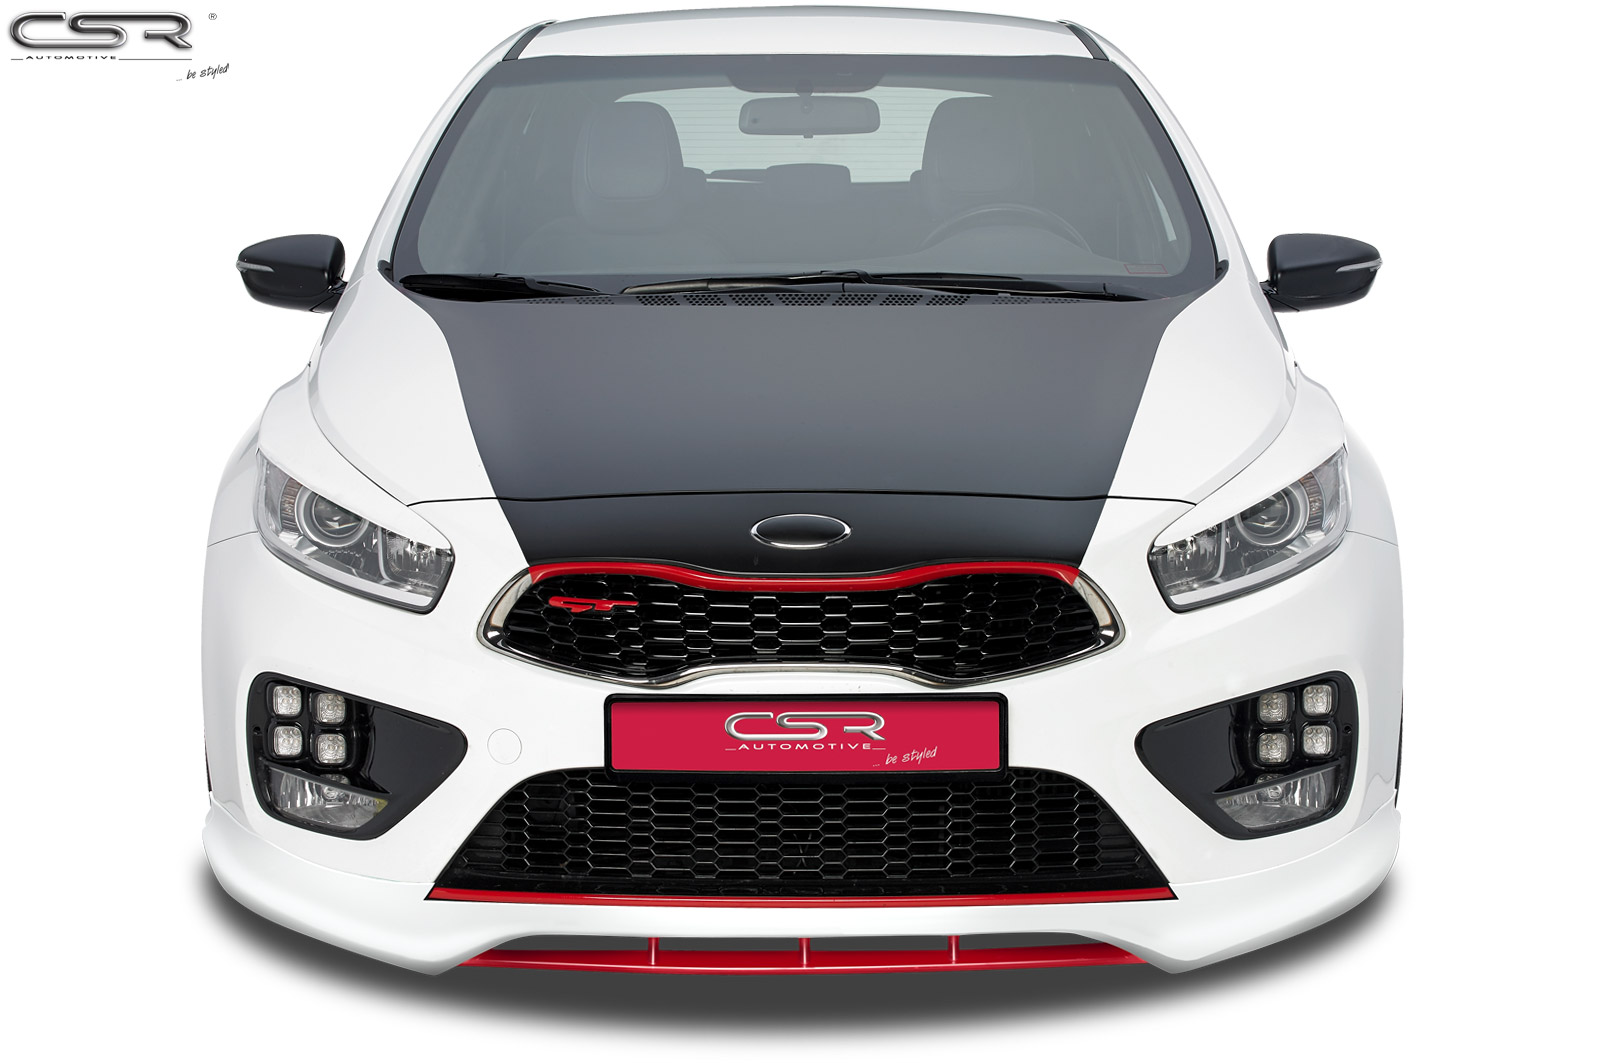 exteri r kia ceed gt pro gt p edn spoiler fa234 csr tuning shop. Black Bedroom Furniture Sets. Home Design Ideas